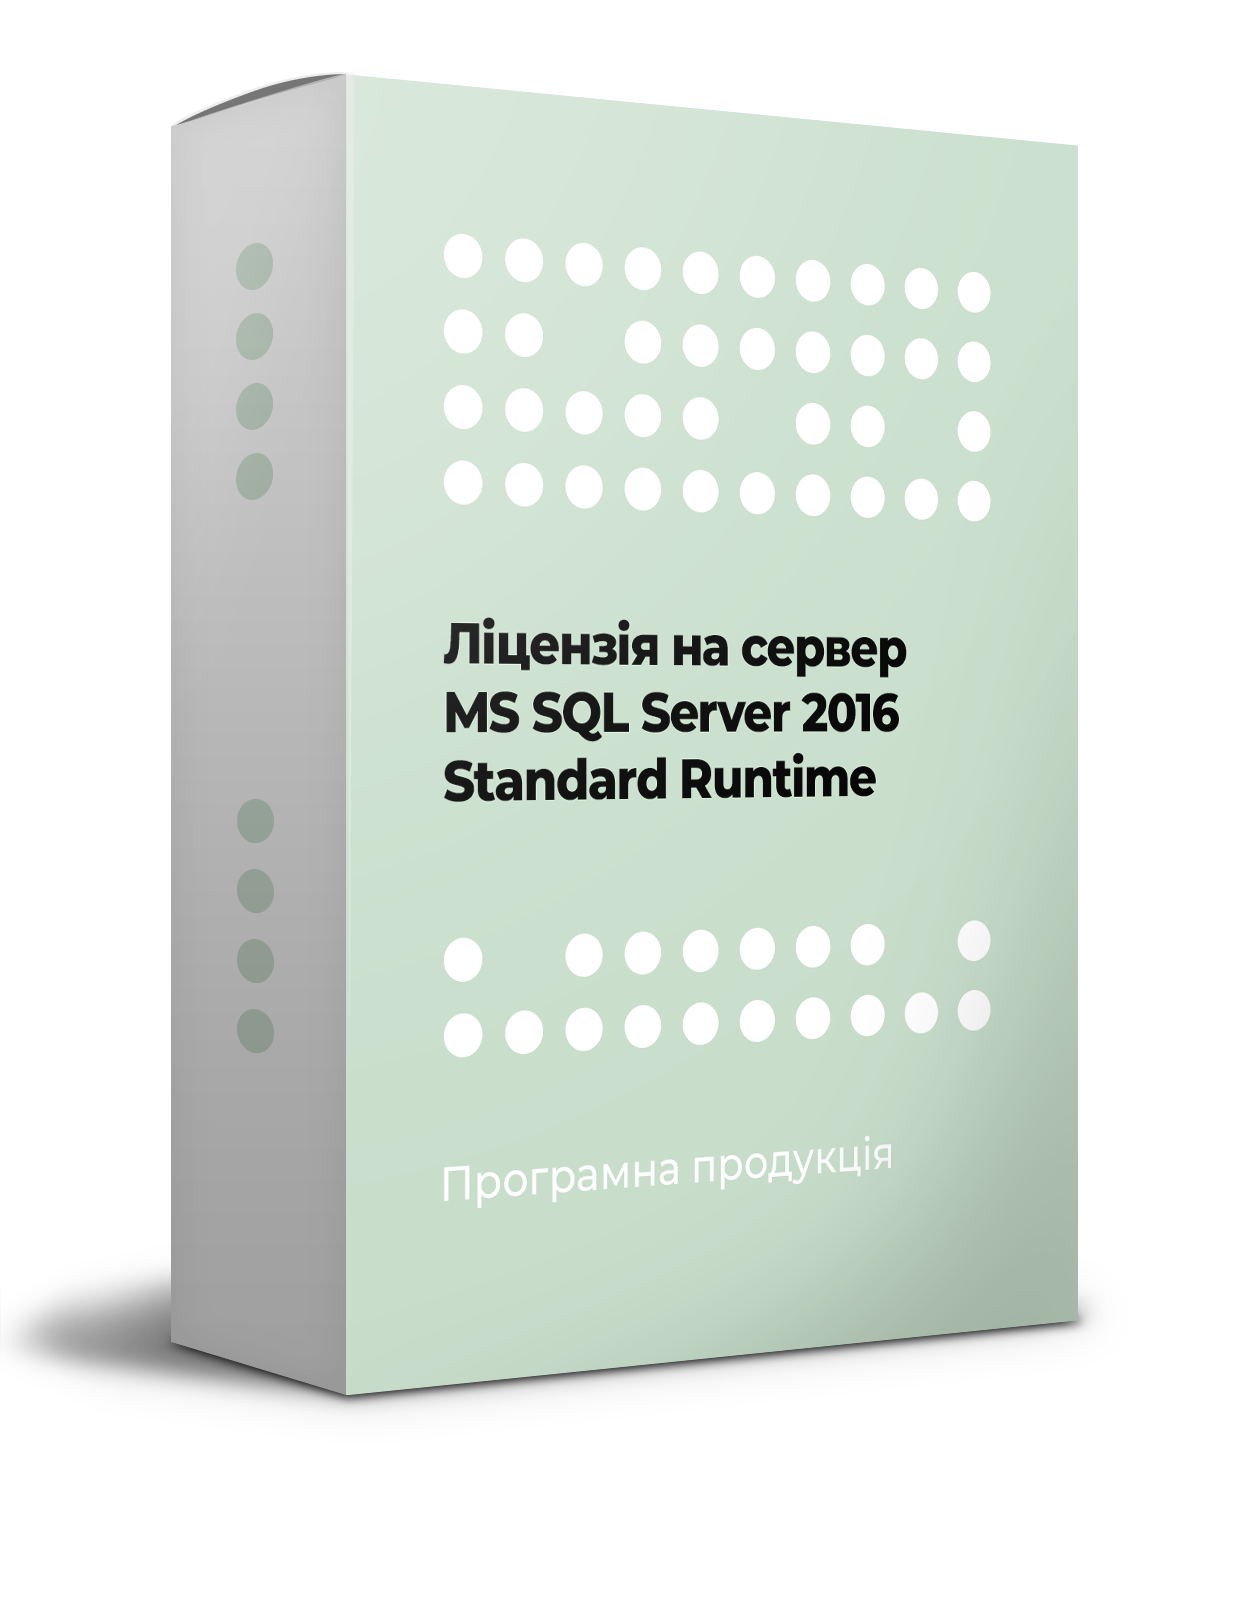 Лицензия на сервер MS SQL Server 2016 Standart Runtime